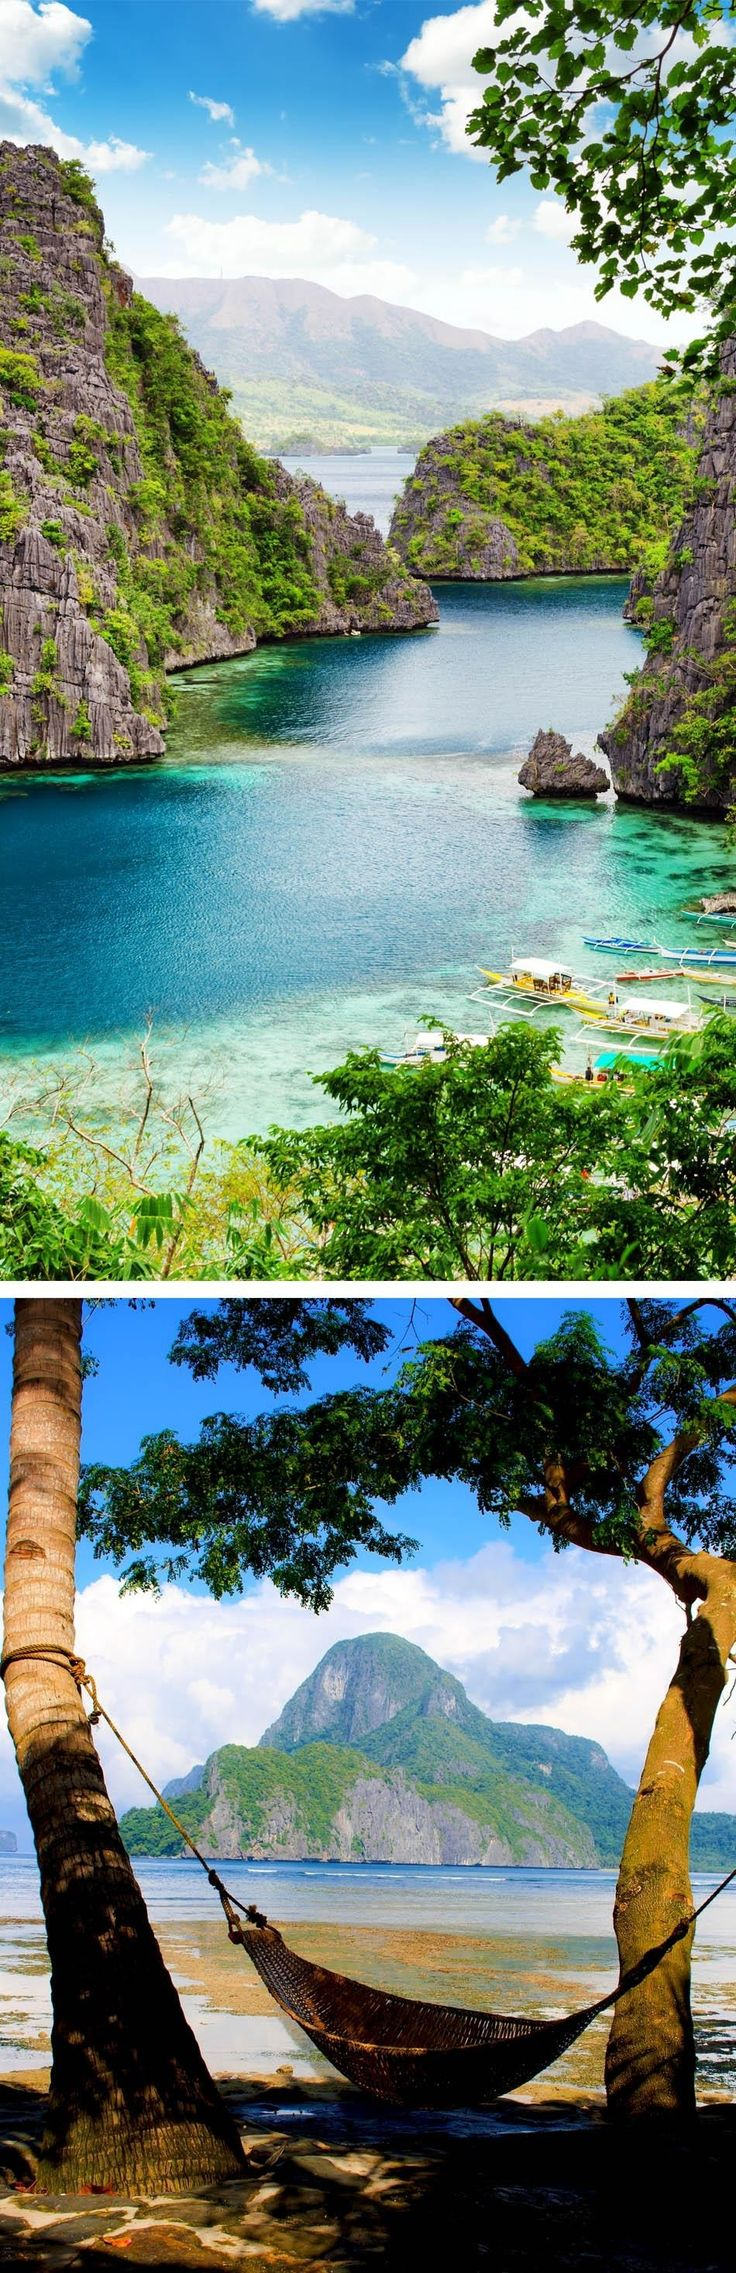 Palawan, Philippines | Top 10 most beautiful islands in the world #LandscapeSea